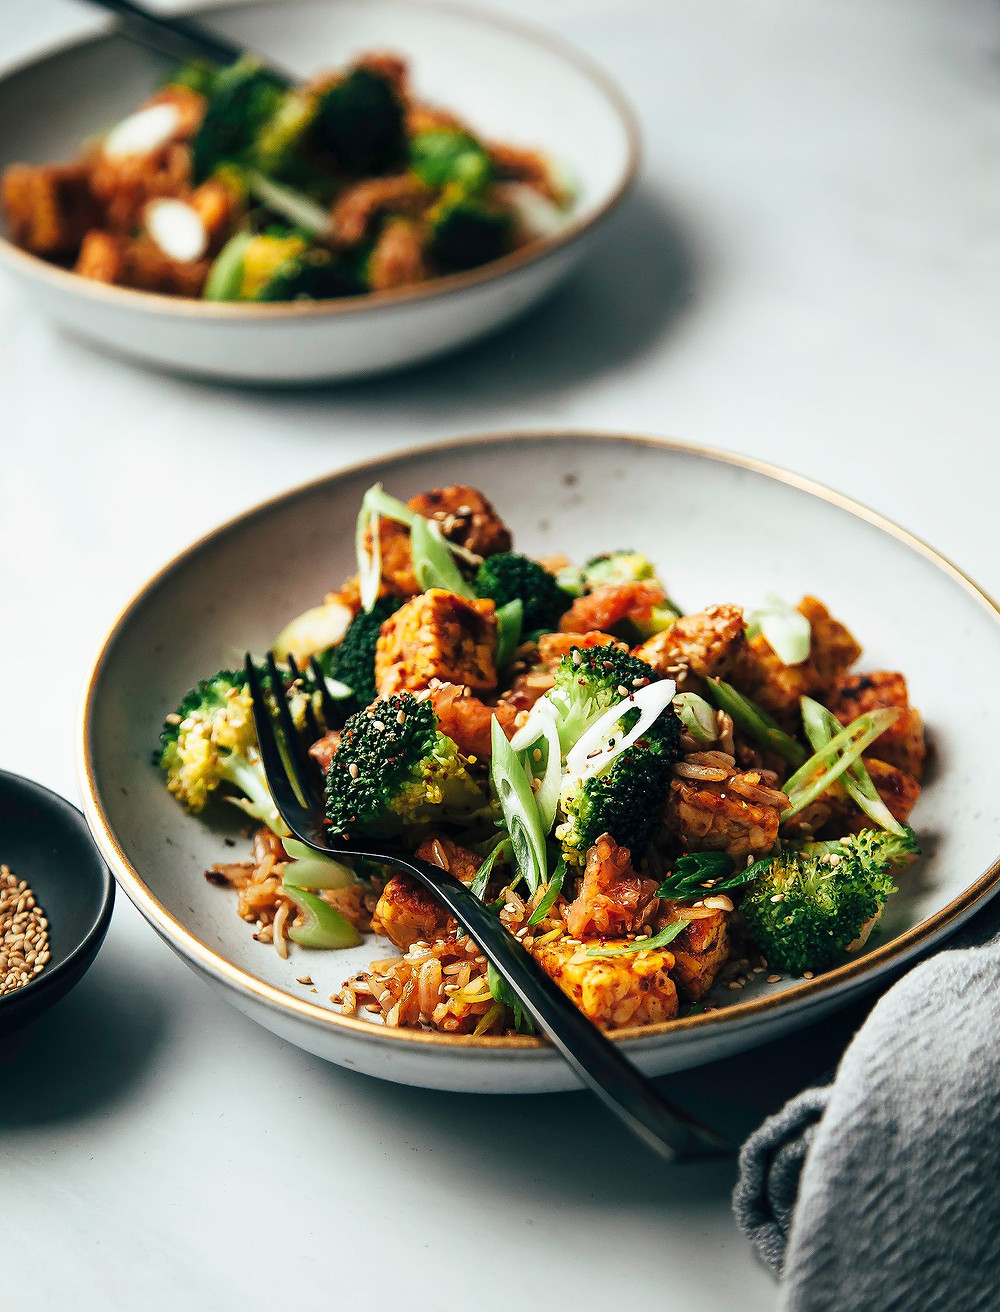 kimchi fried rice with vegetables for a healthy gut